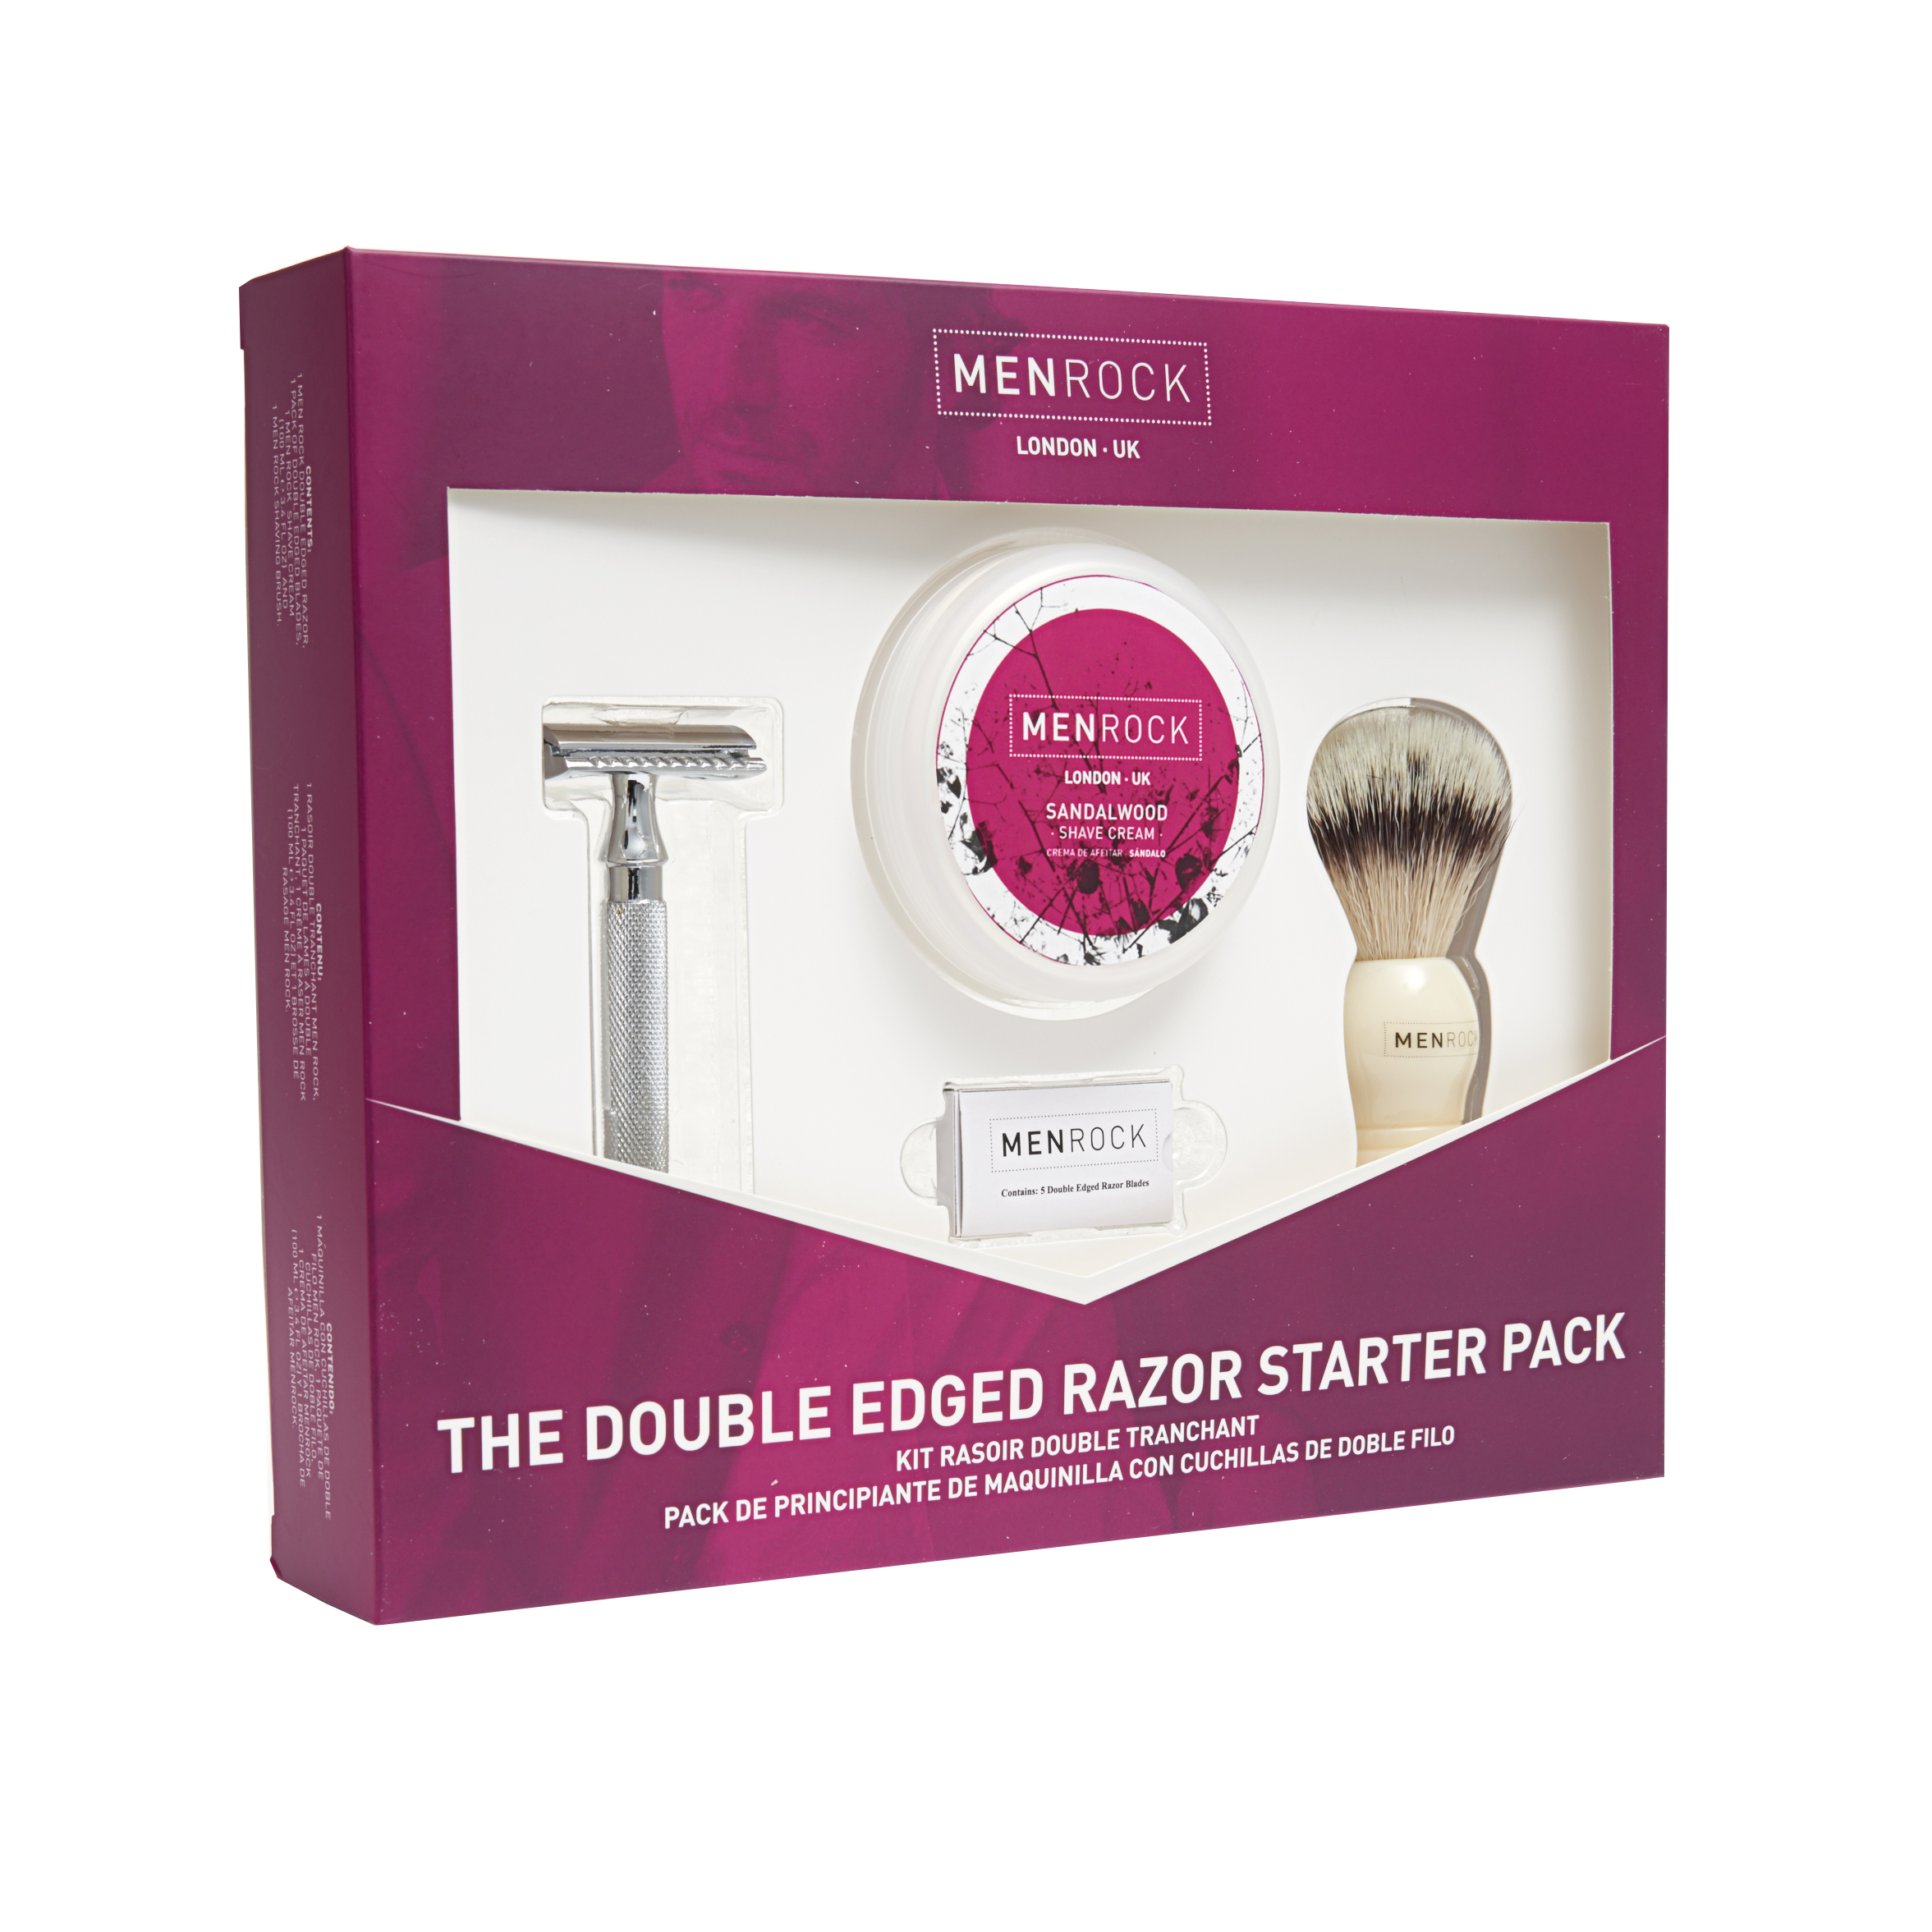 MENROCK The Double Edged Razor Pack